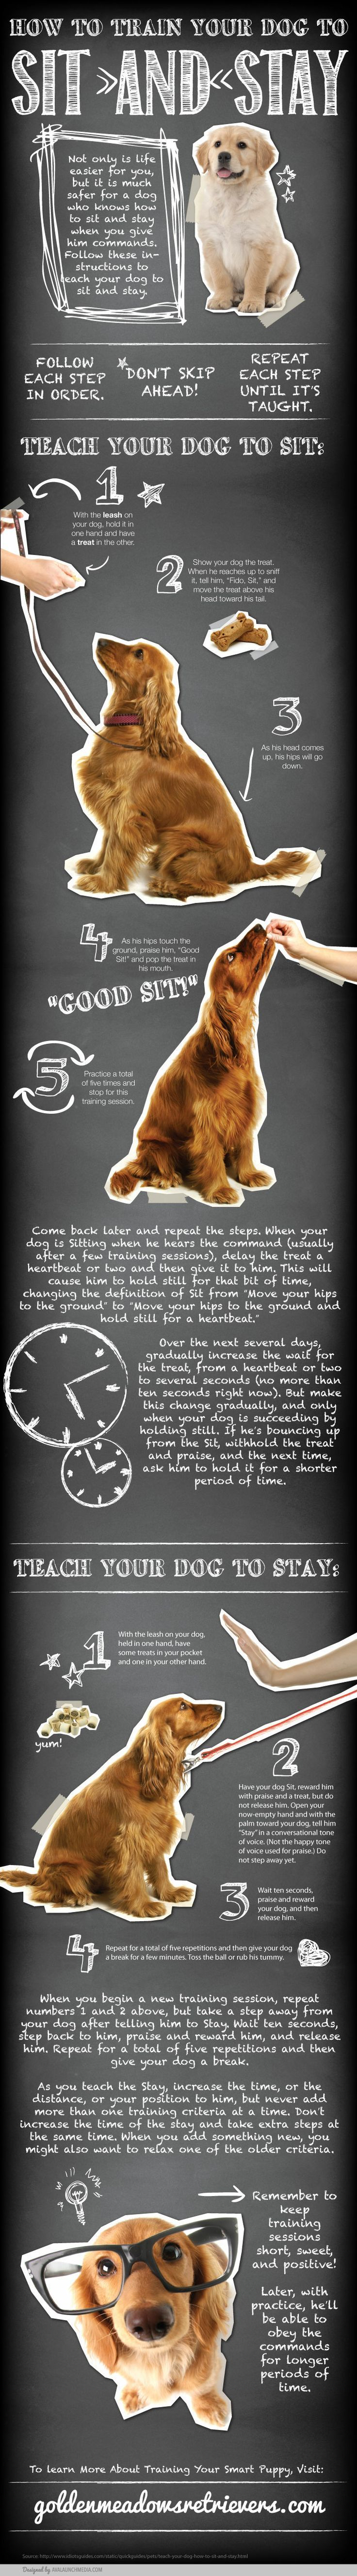 [Infographic] Teach Your Dog to Sit and Stay - http://www.pawsforpeeps.com/sitandstay/